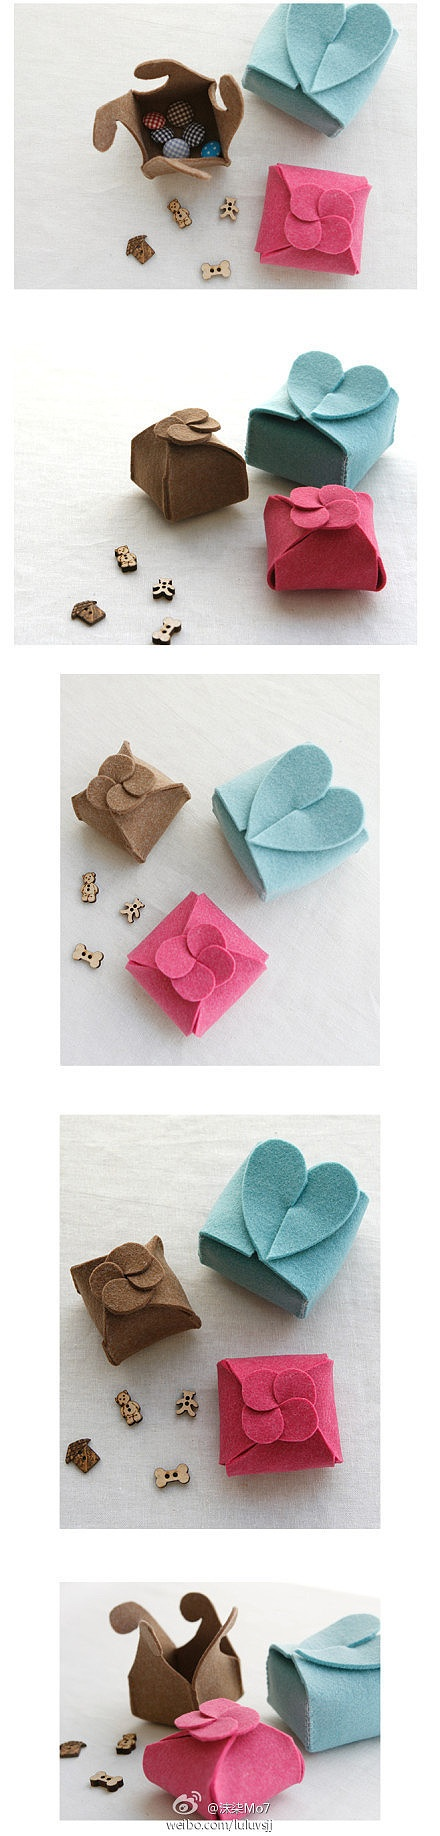 Felt boxes with cute fasteners on top